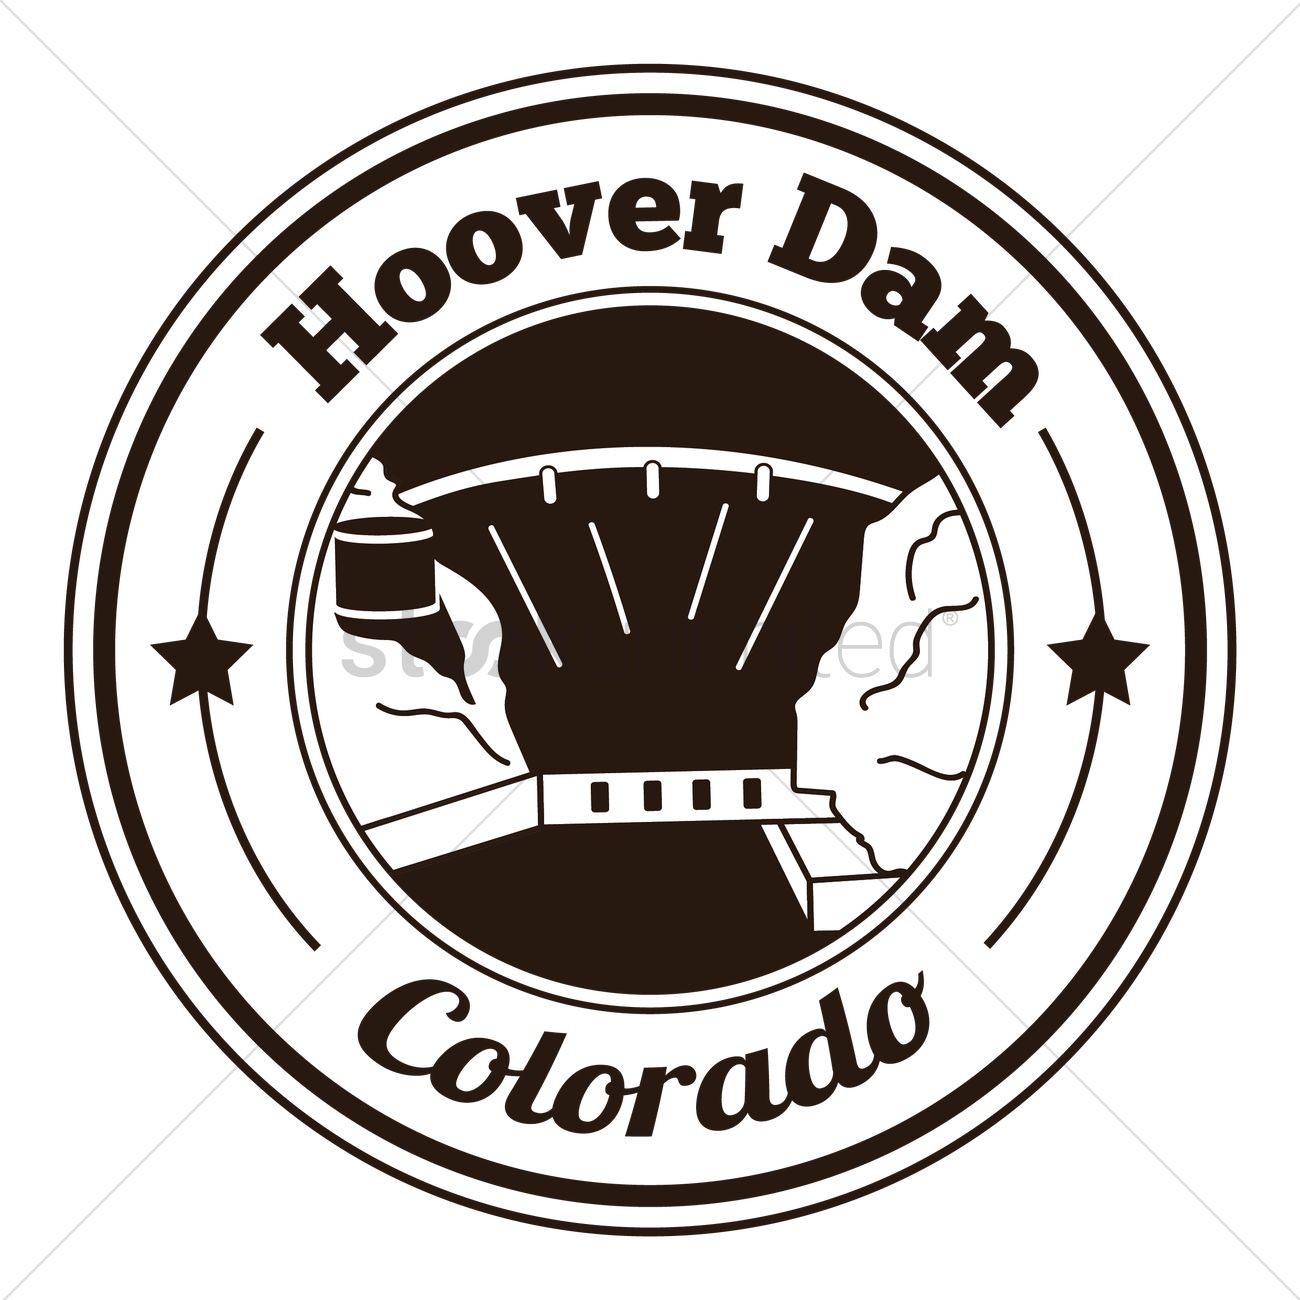 Hoover dam label Vector Image.